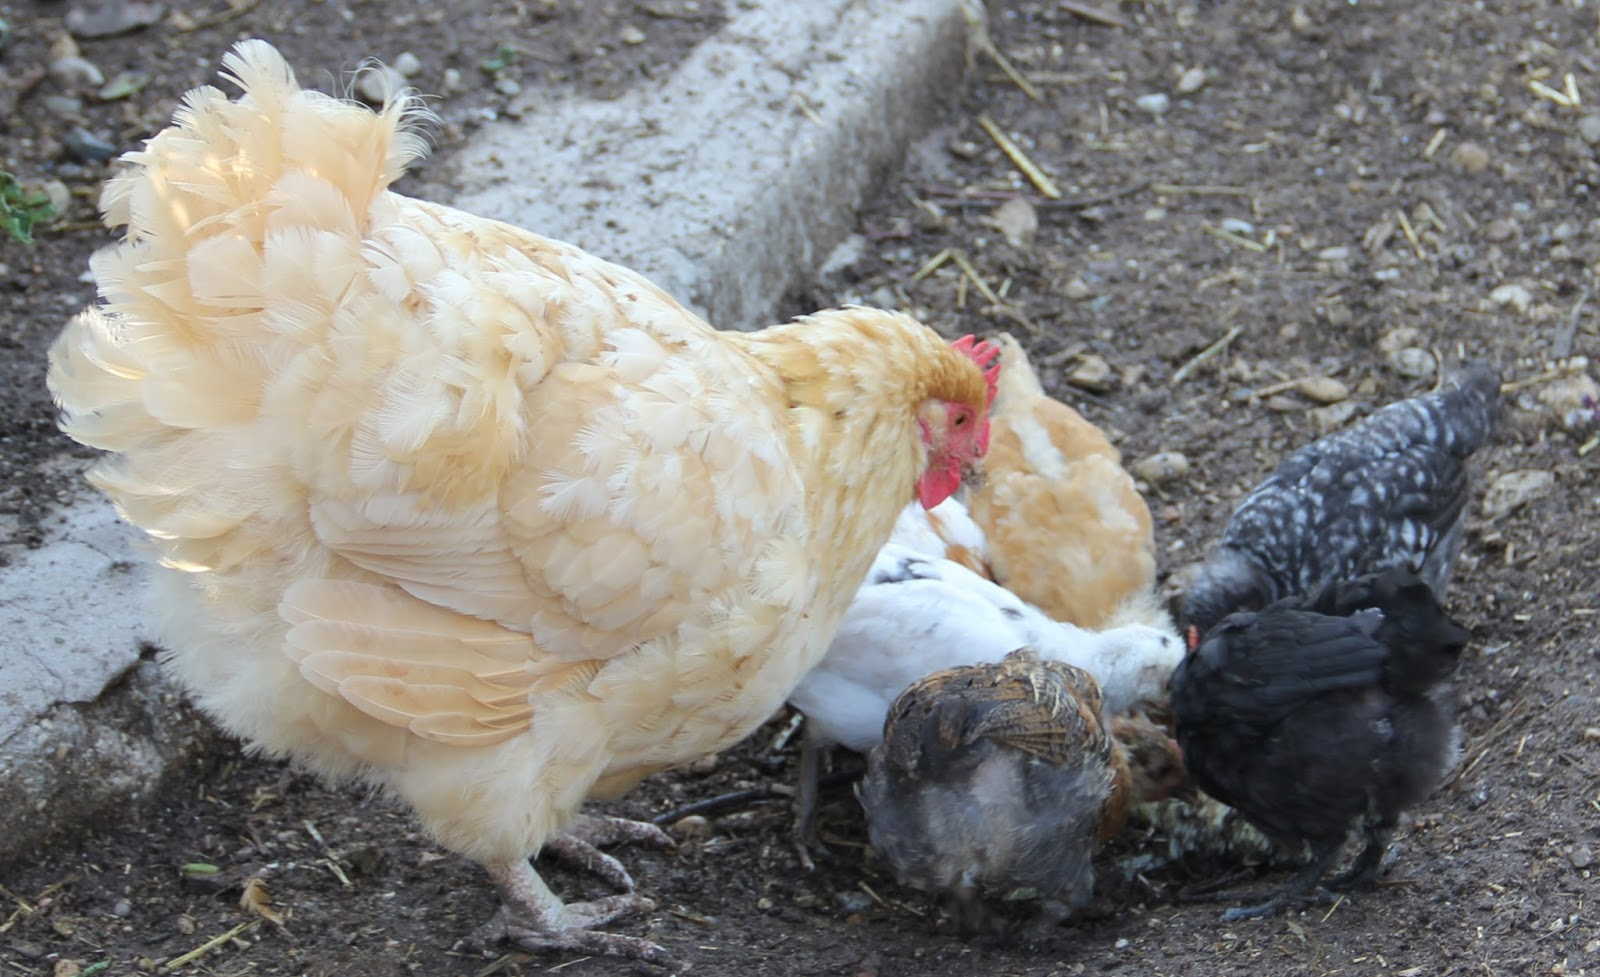 Hatch 2013 now at 6 weeks of age | Wandering Creek Acres